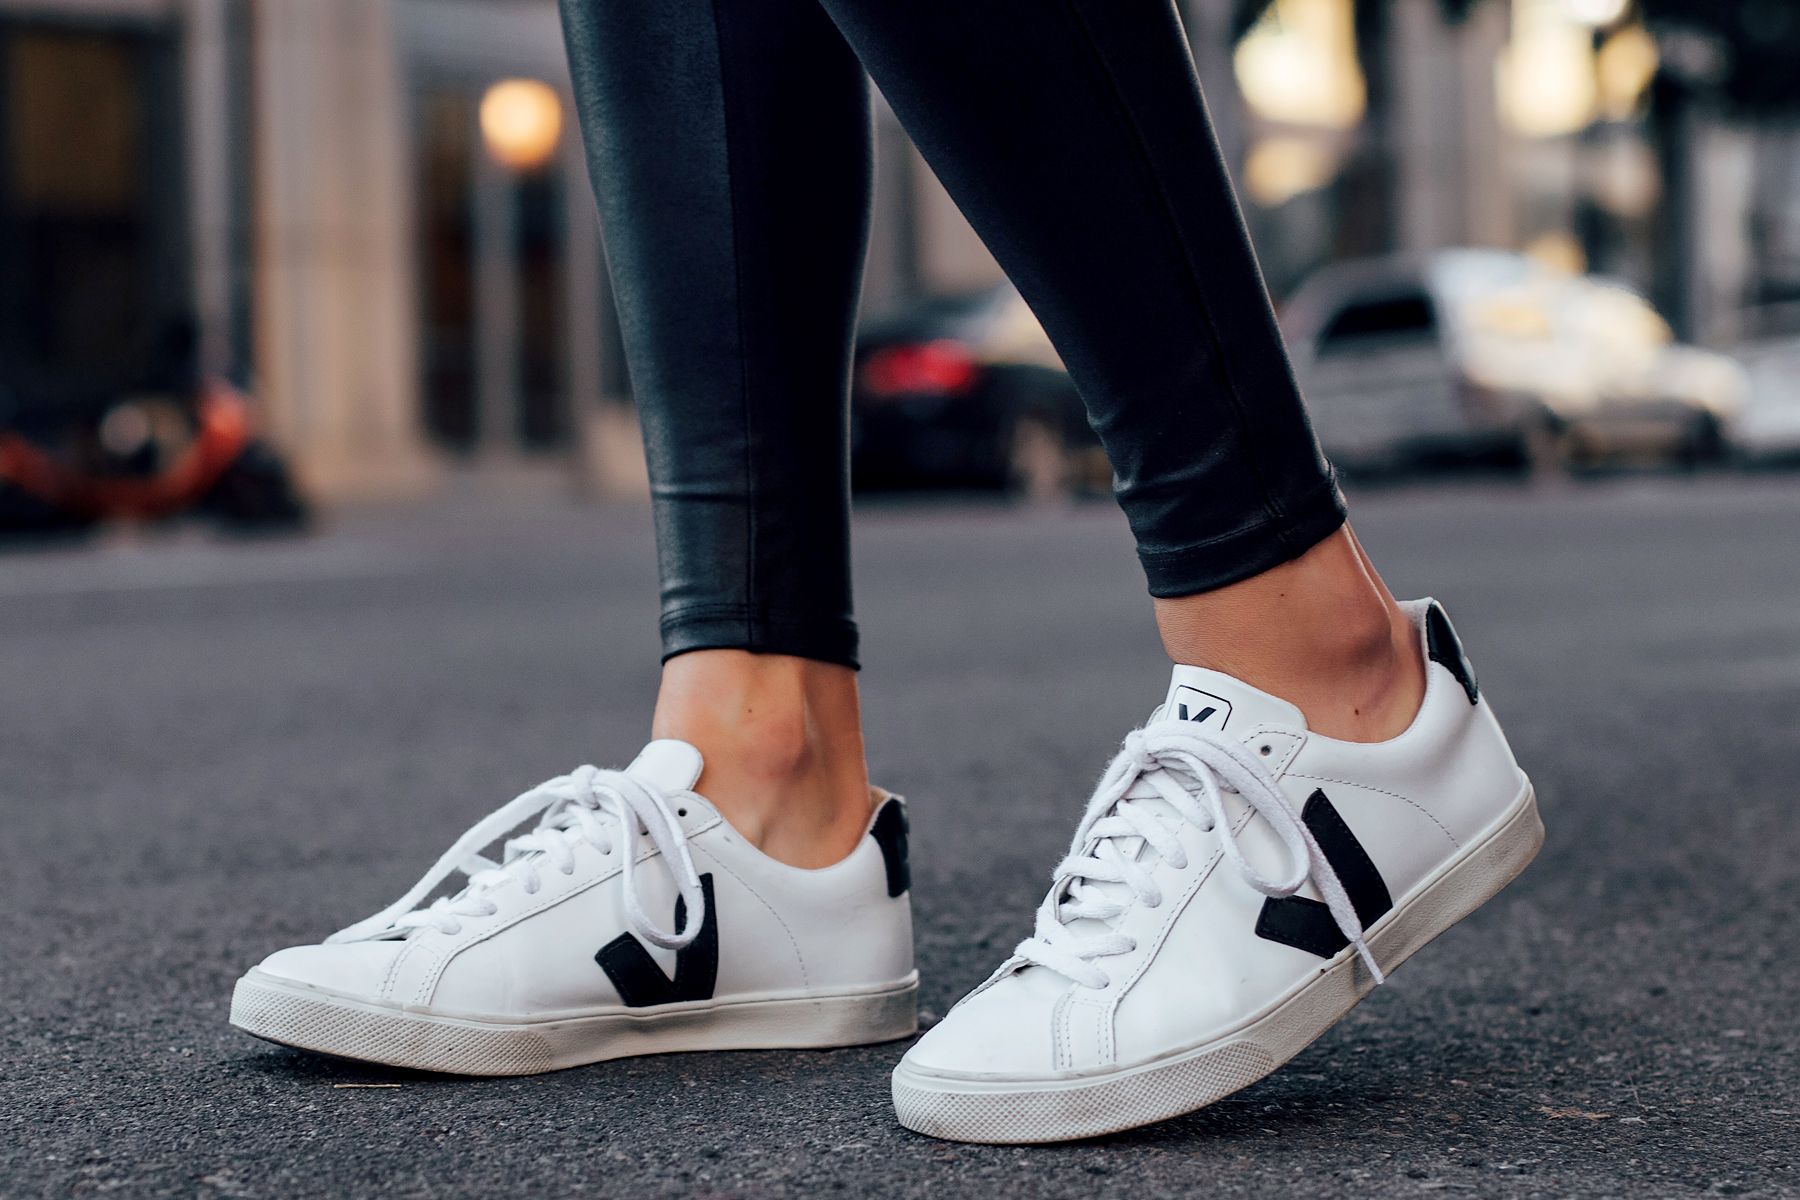 Woman Wearing Spanx Black Faux Leather Leggings Veja Espalar Sneakers White Fashion Jackson San Diego Fashion Blogger Street Style